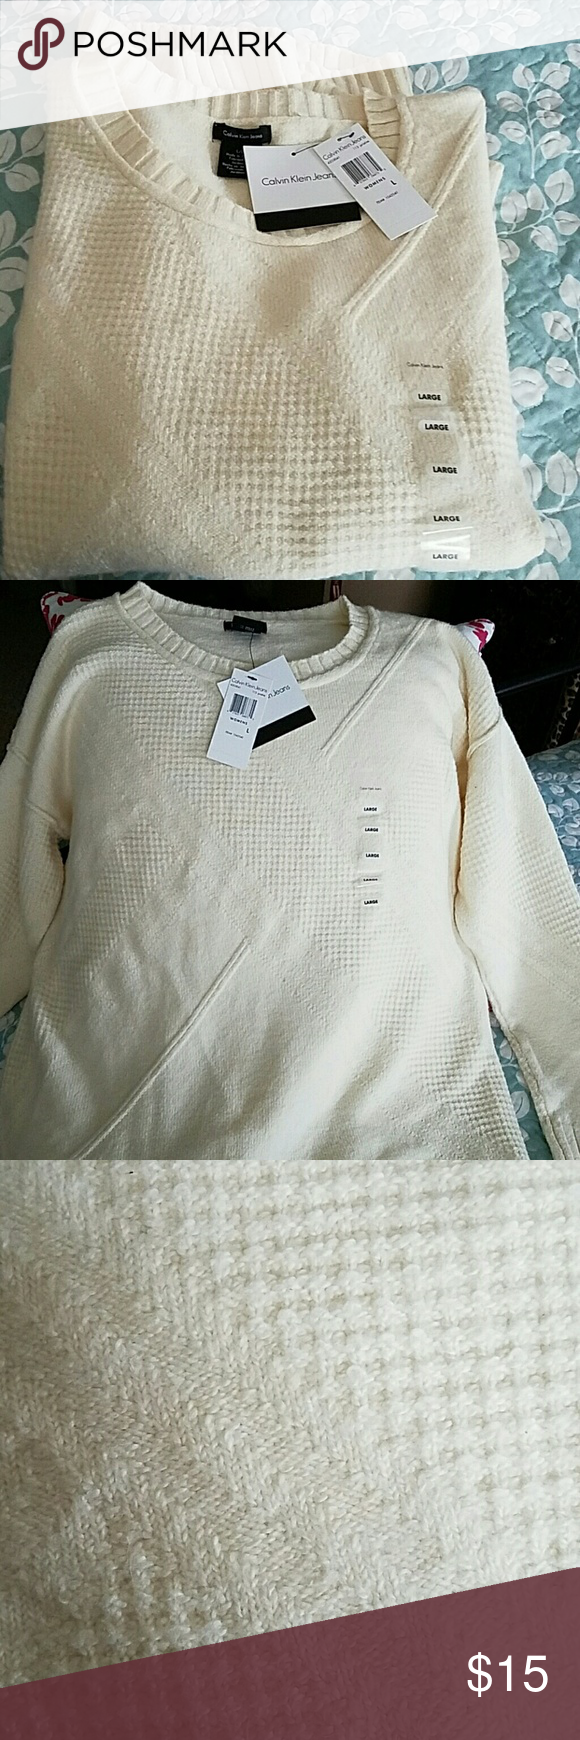 Winter White Sweater Super soft winter white sweater is perfect for your winter wardrobe! Wear casually or dress up with a scarf. Never worn! Calvin Klein Jeans Sweaters Crew & Scoop Necks